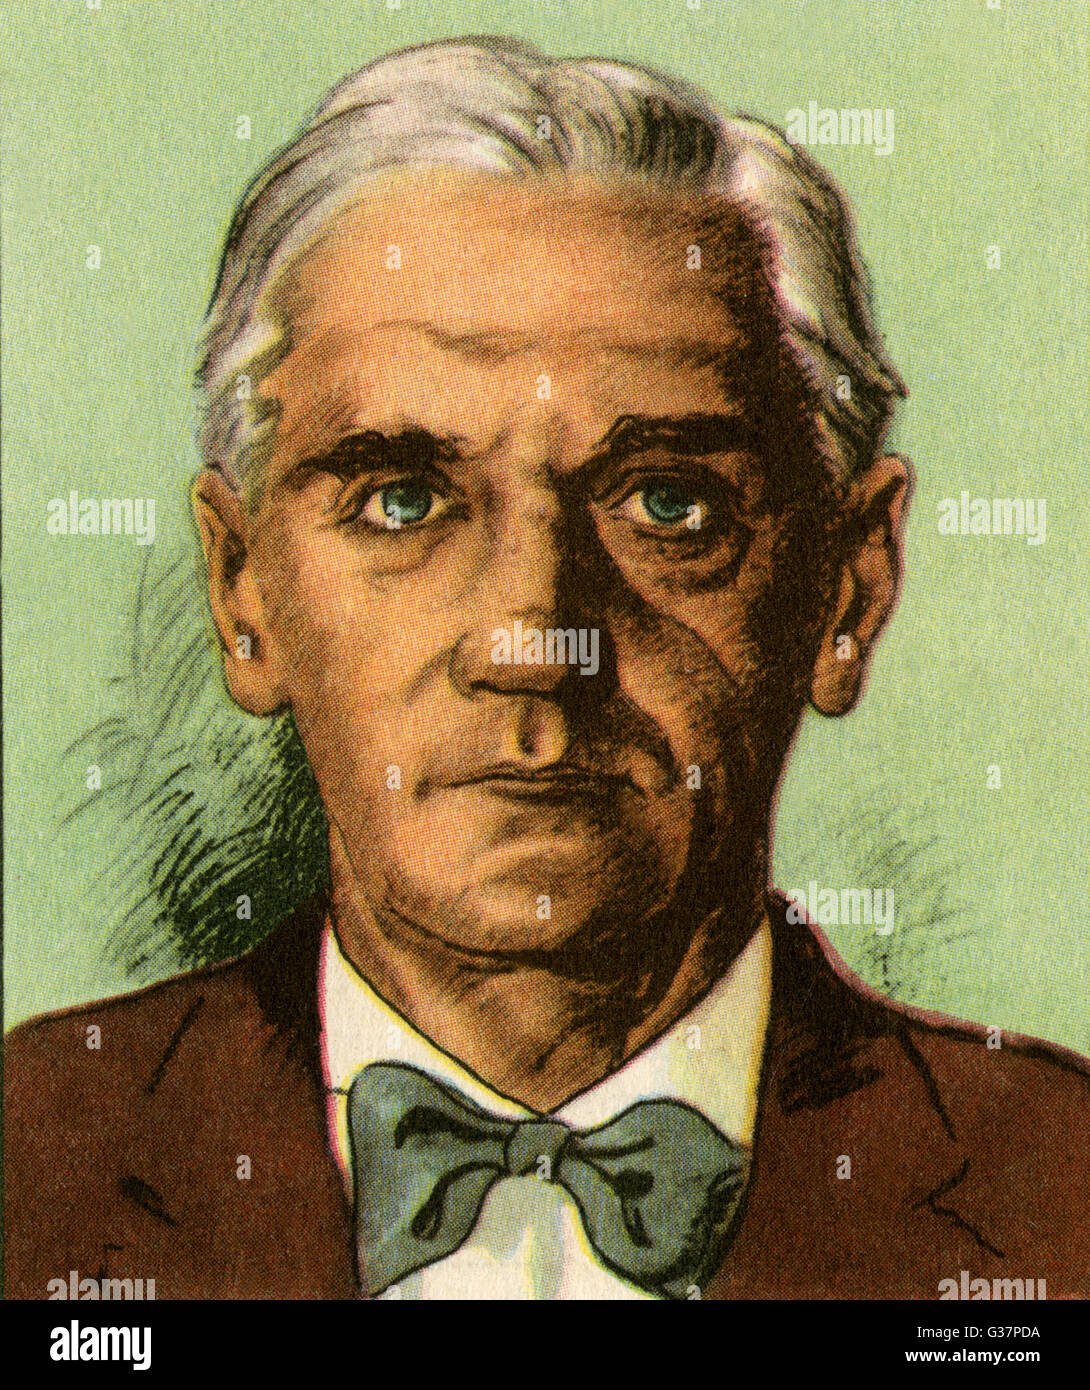 SIR Alexander Fleming - British scientifique médicale et bactériologiste. Date : 1881 - 1955 Photo Stock